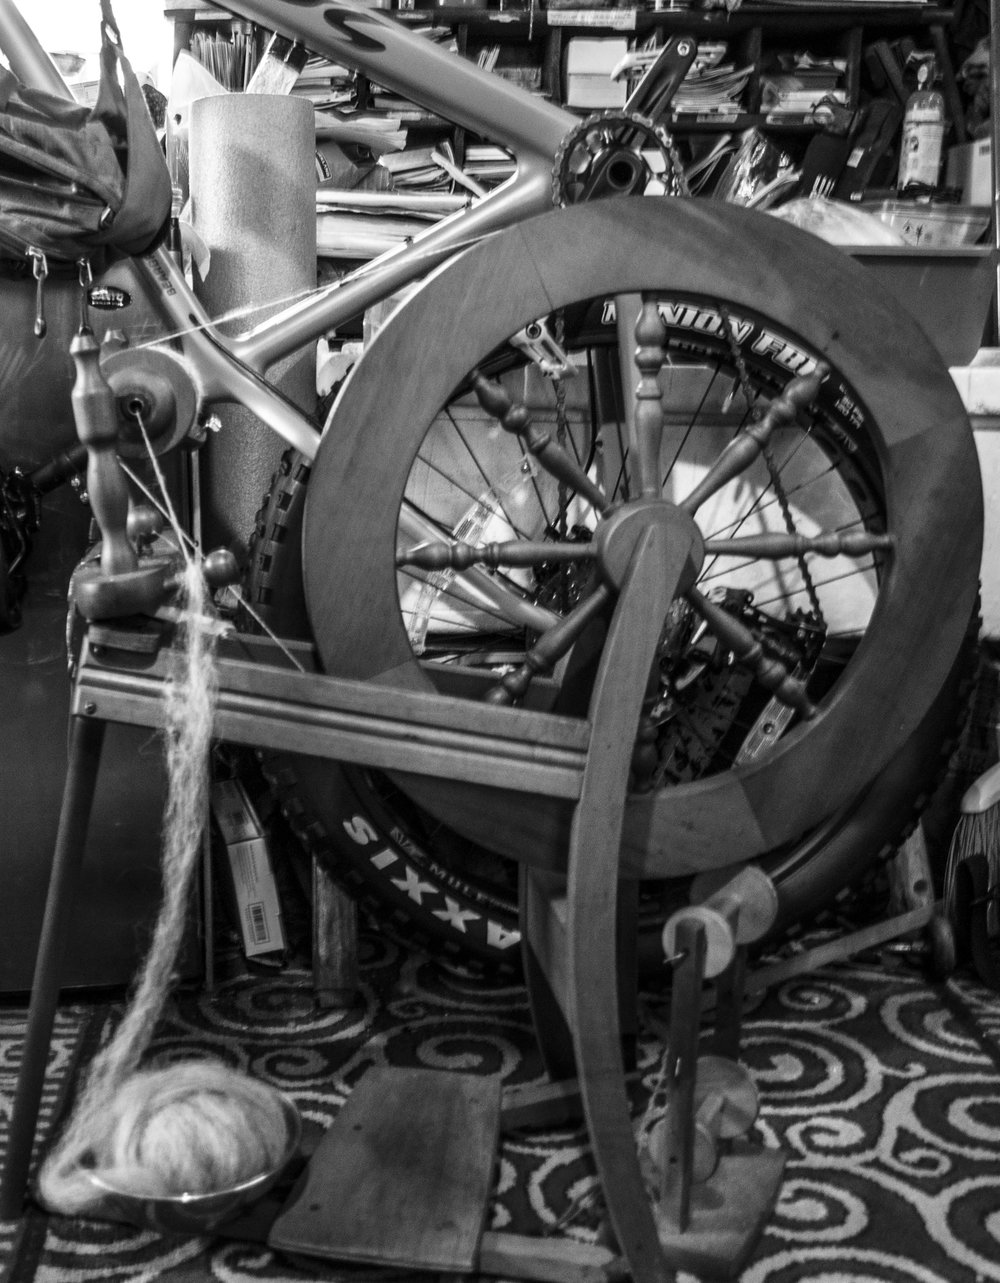 Mark Vail's spinning wheel and fat tire bike